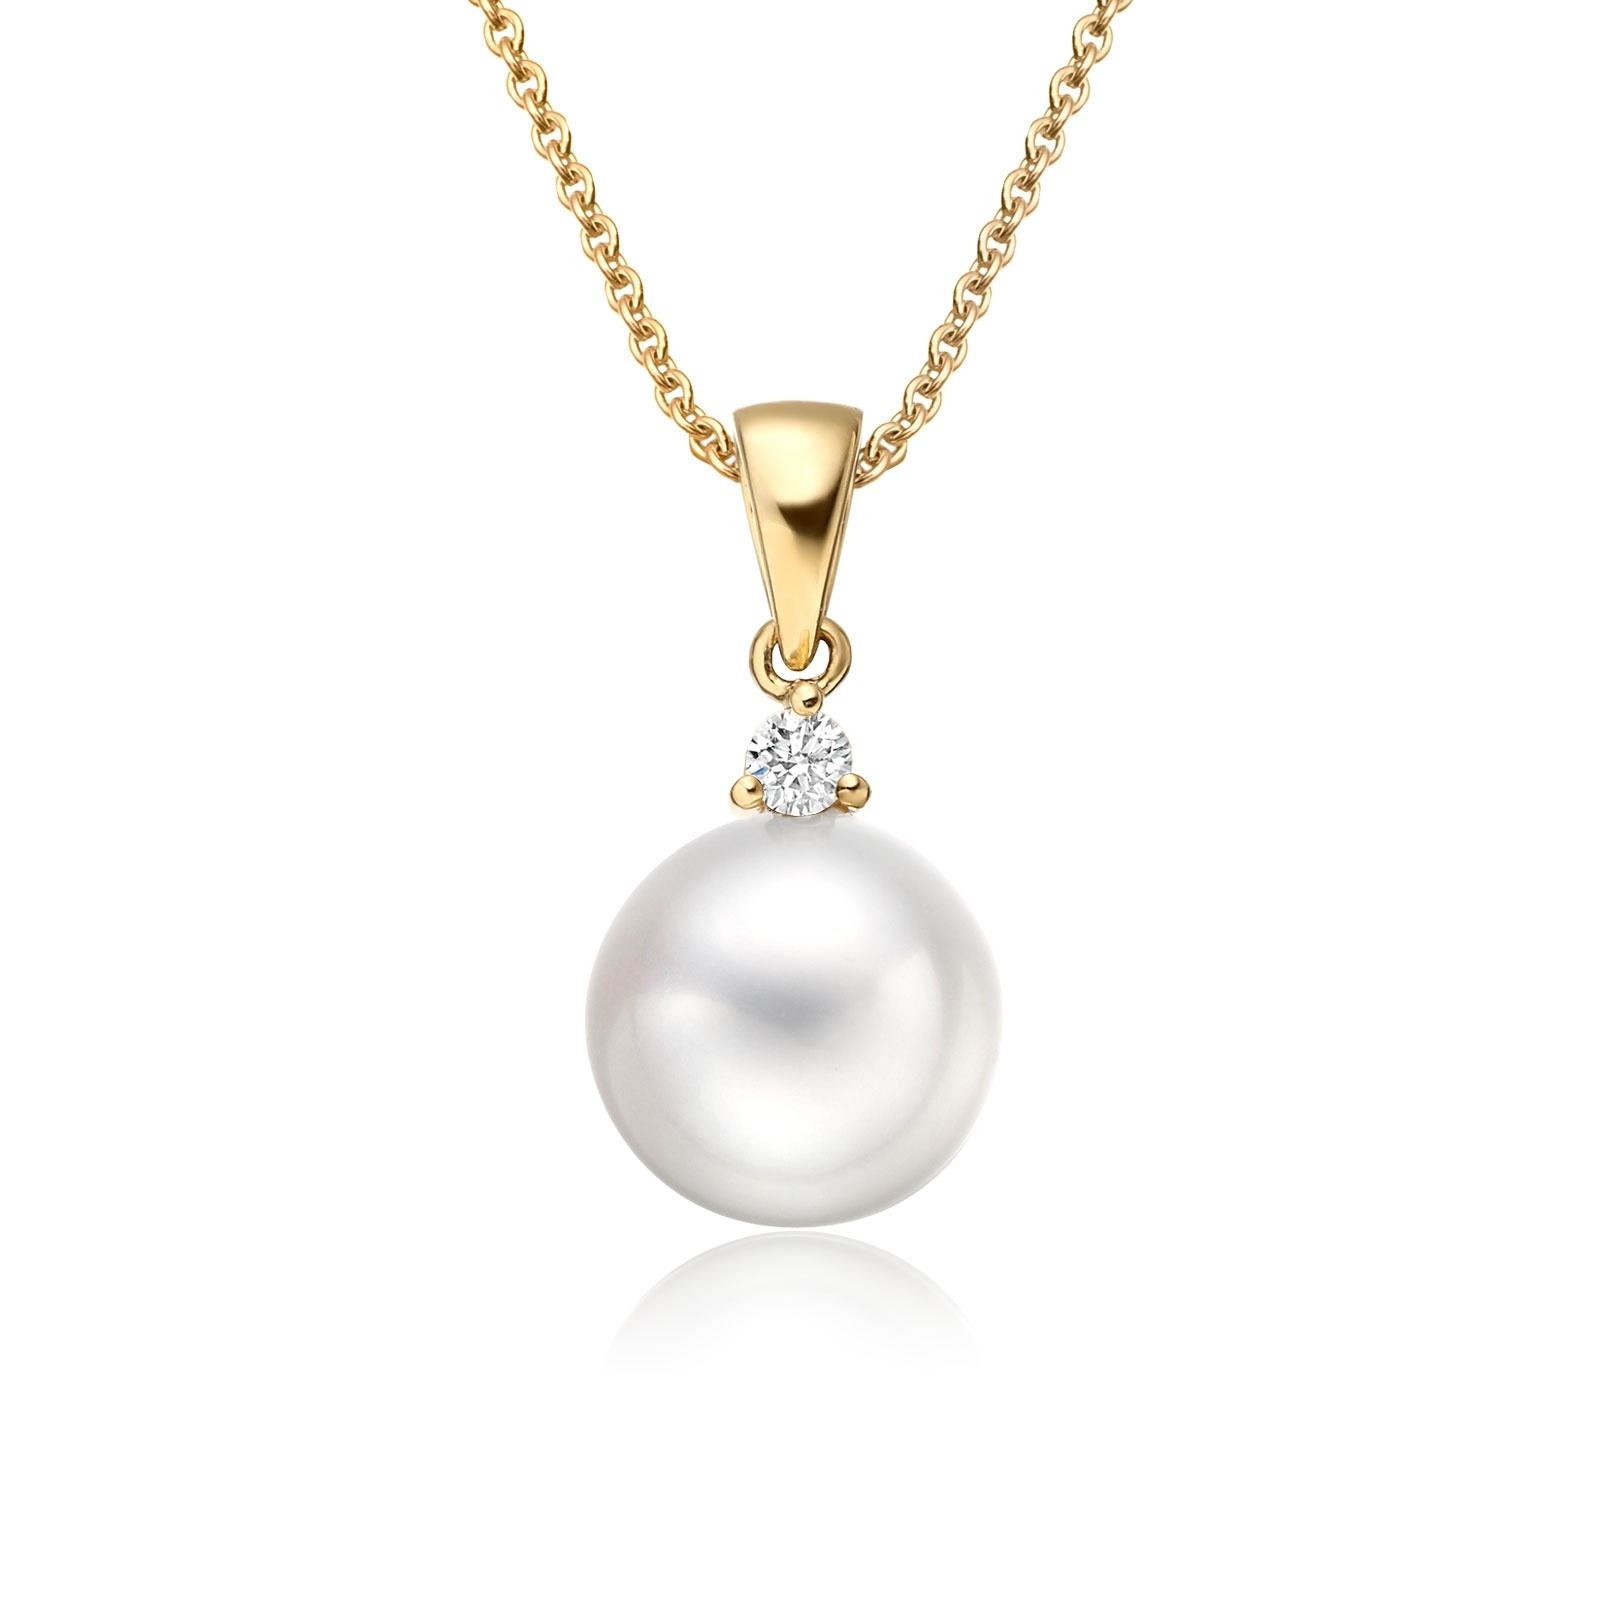 White South Sea Pearl and Diamond Pendant in Yellow Gold-SPWRYG1313-1